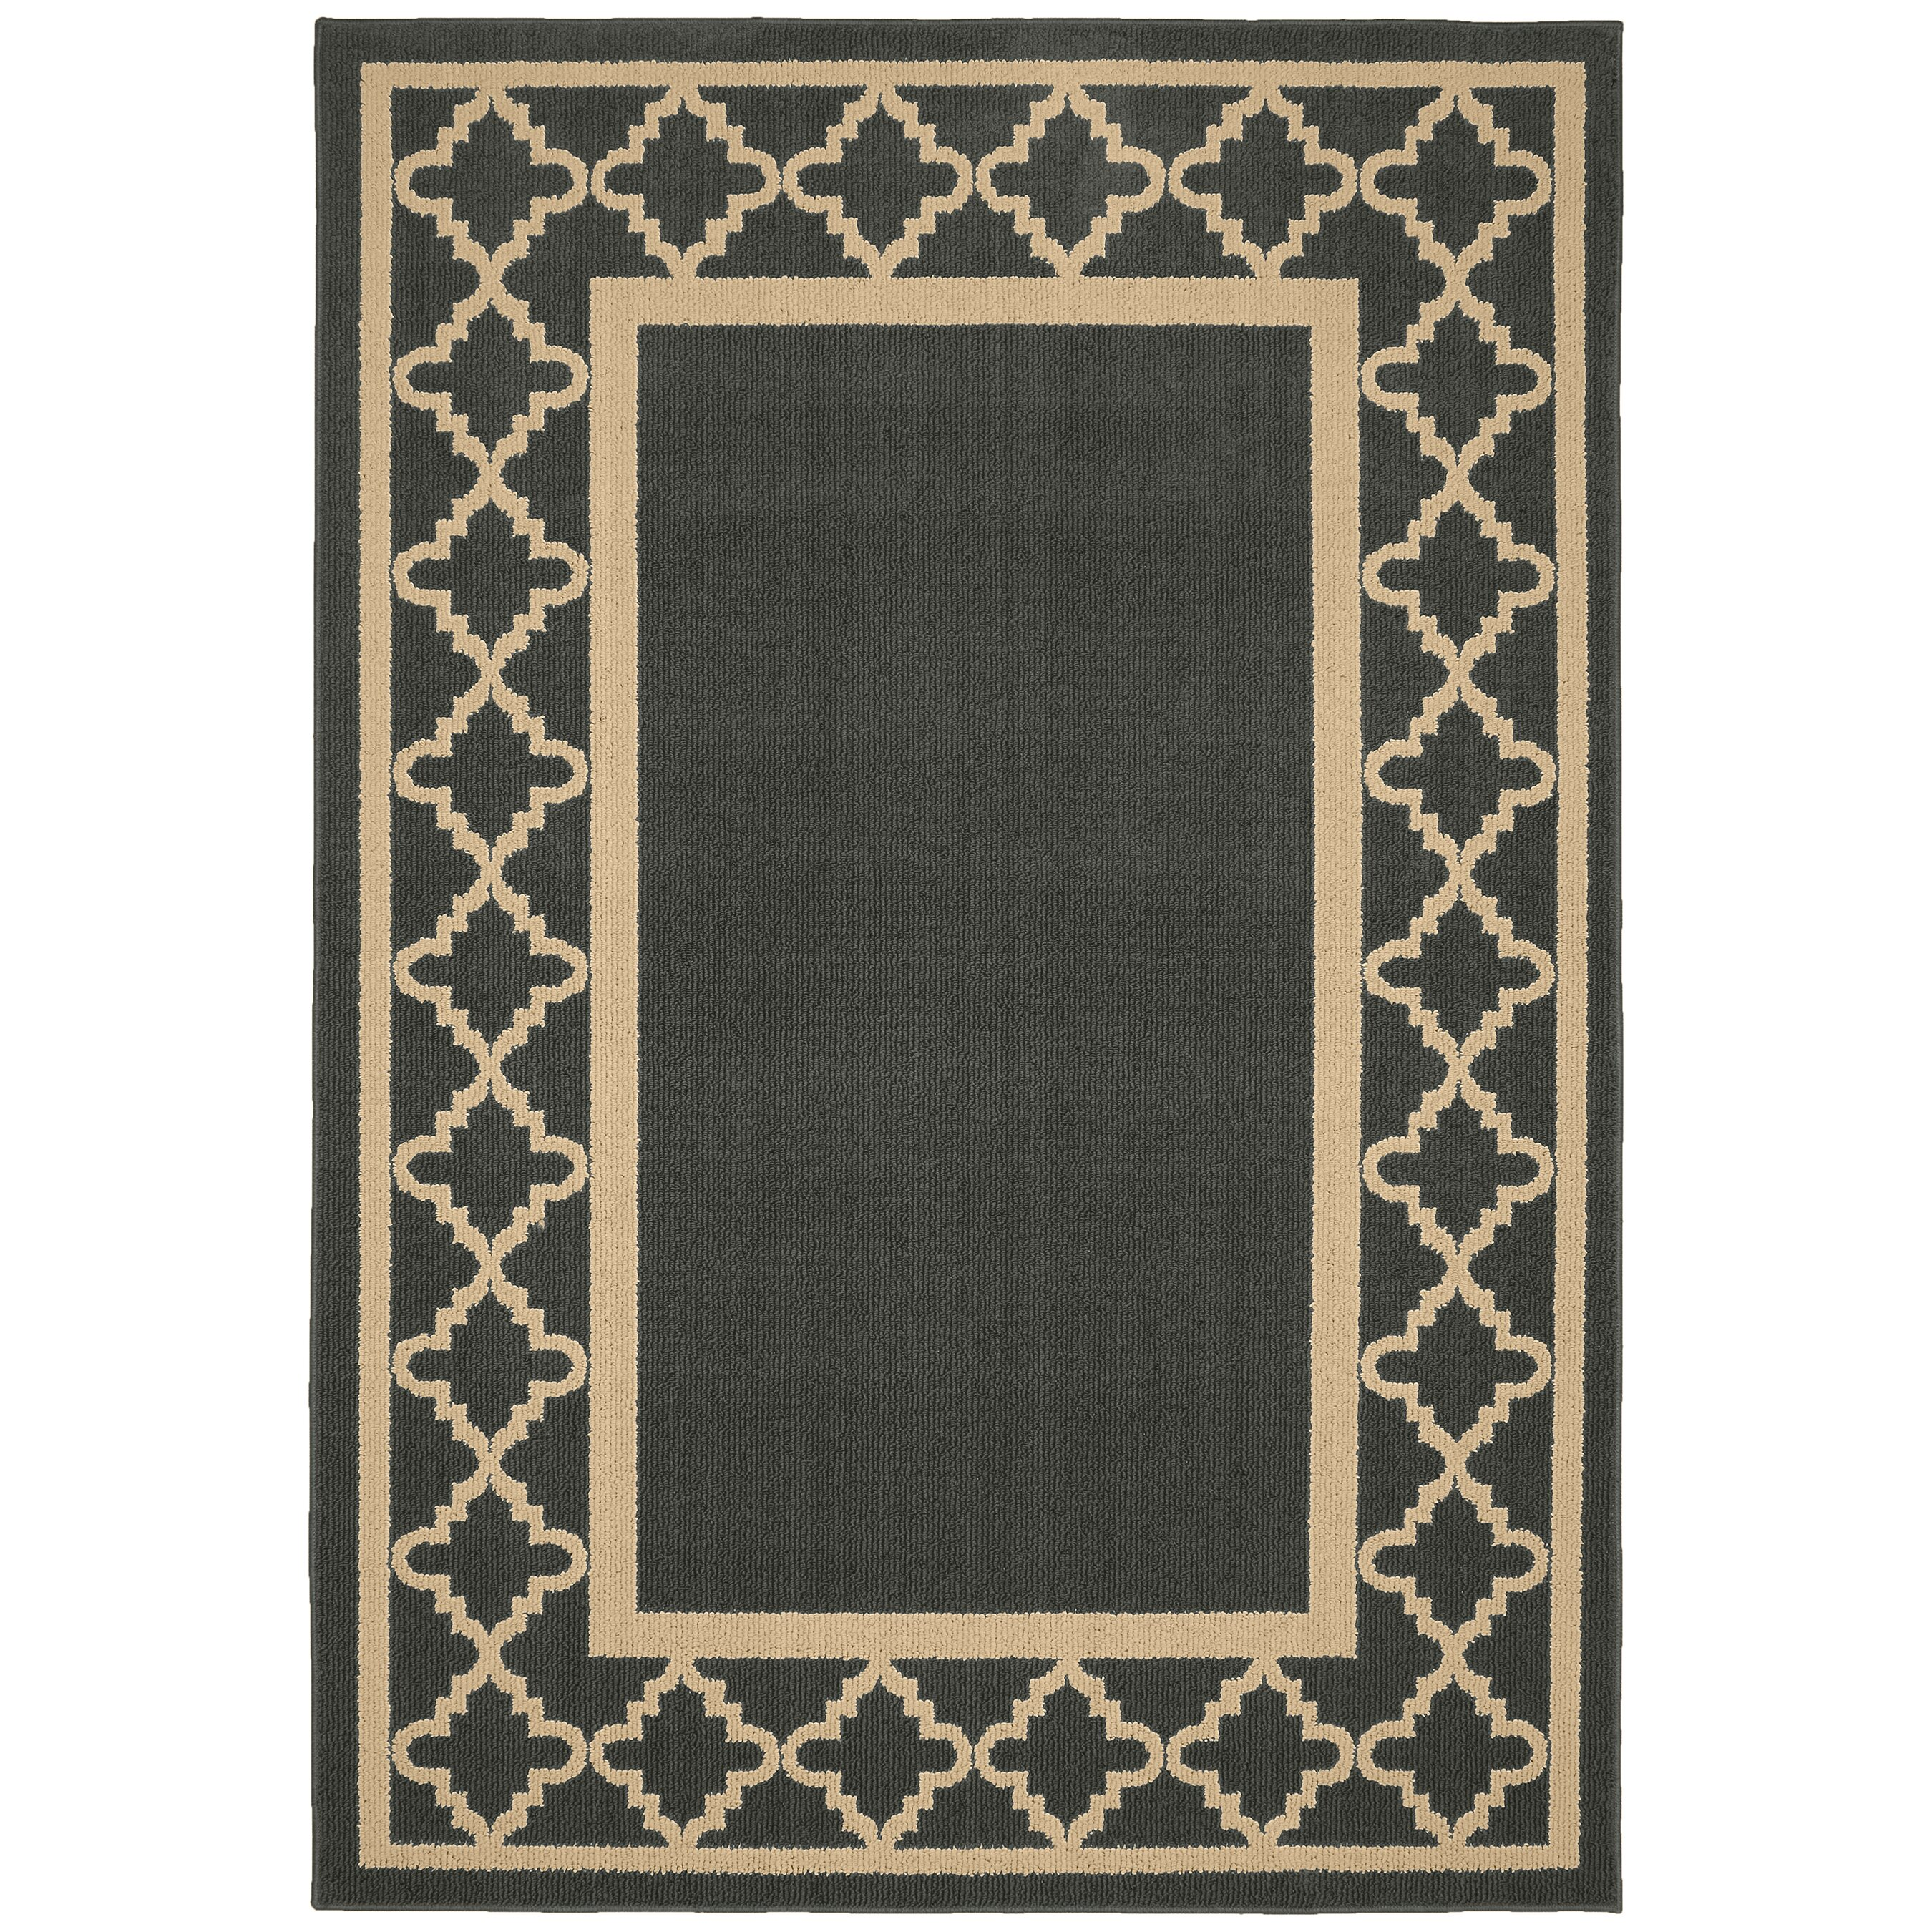 Garland rug moroccan frame gray tan area rug wayfair for Grey and tan rug